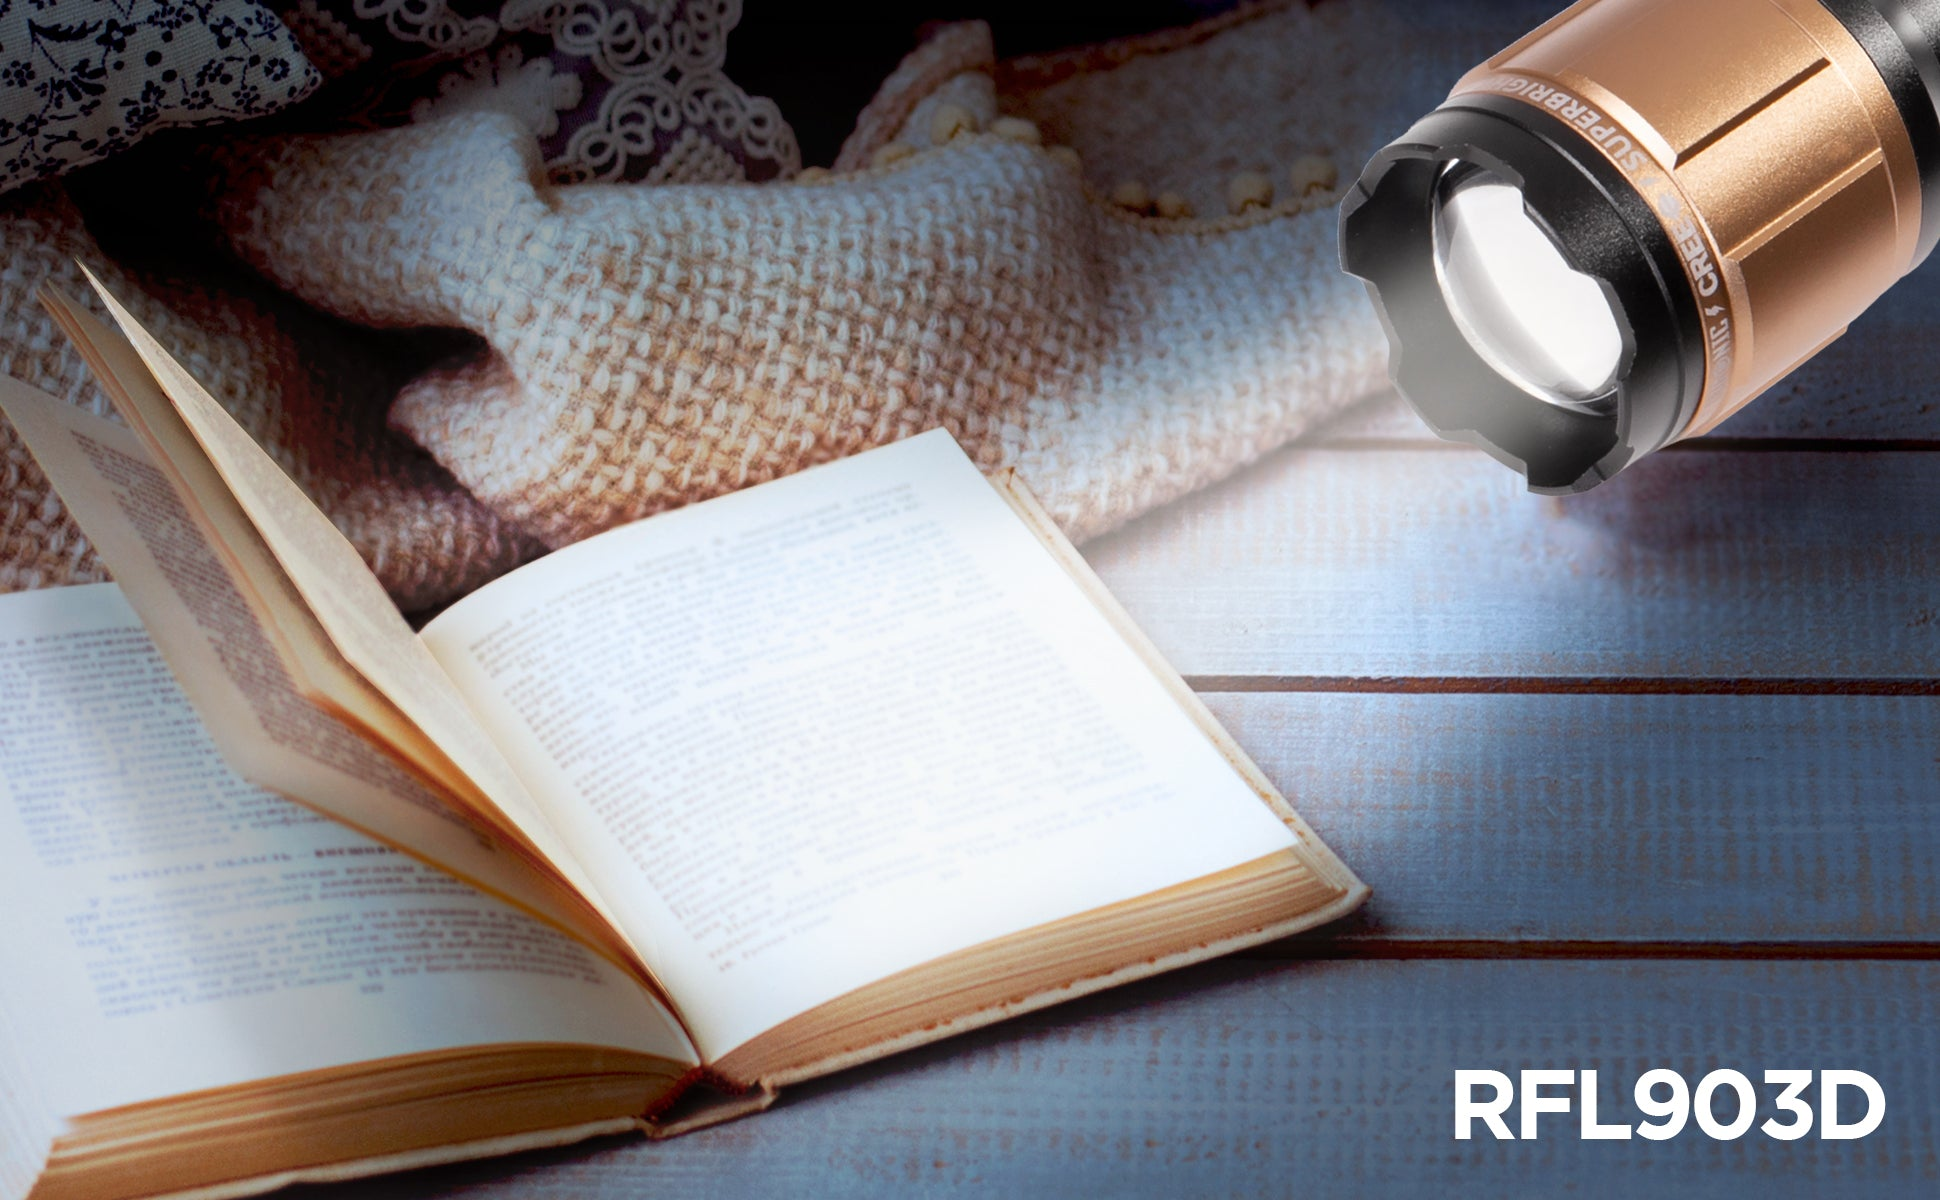 RFL903D torch shining onto an open book on top of a cosy blanket